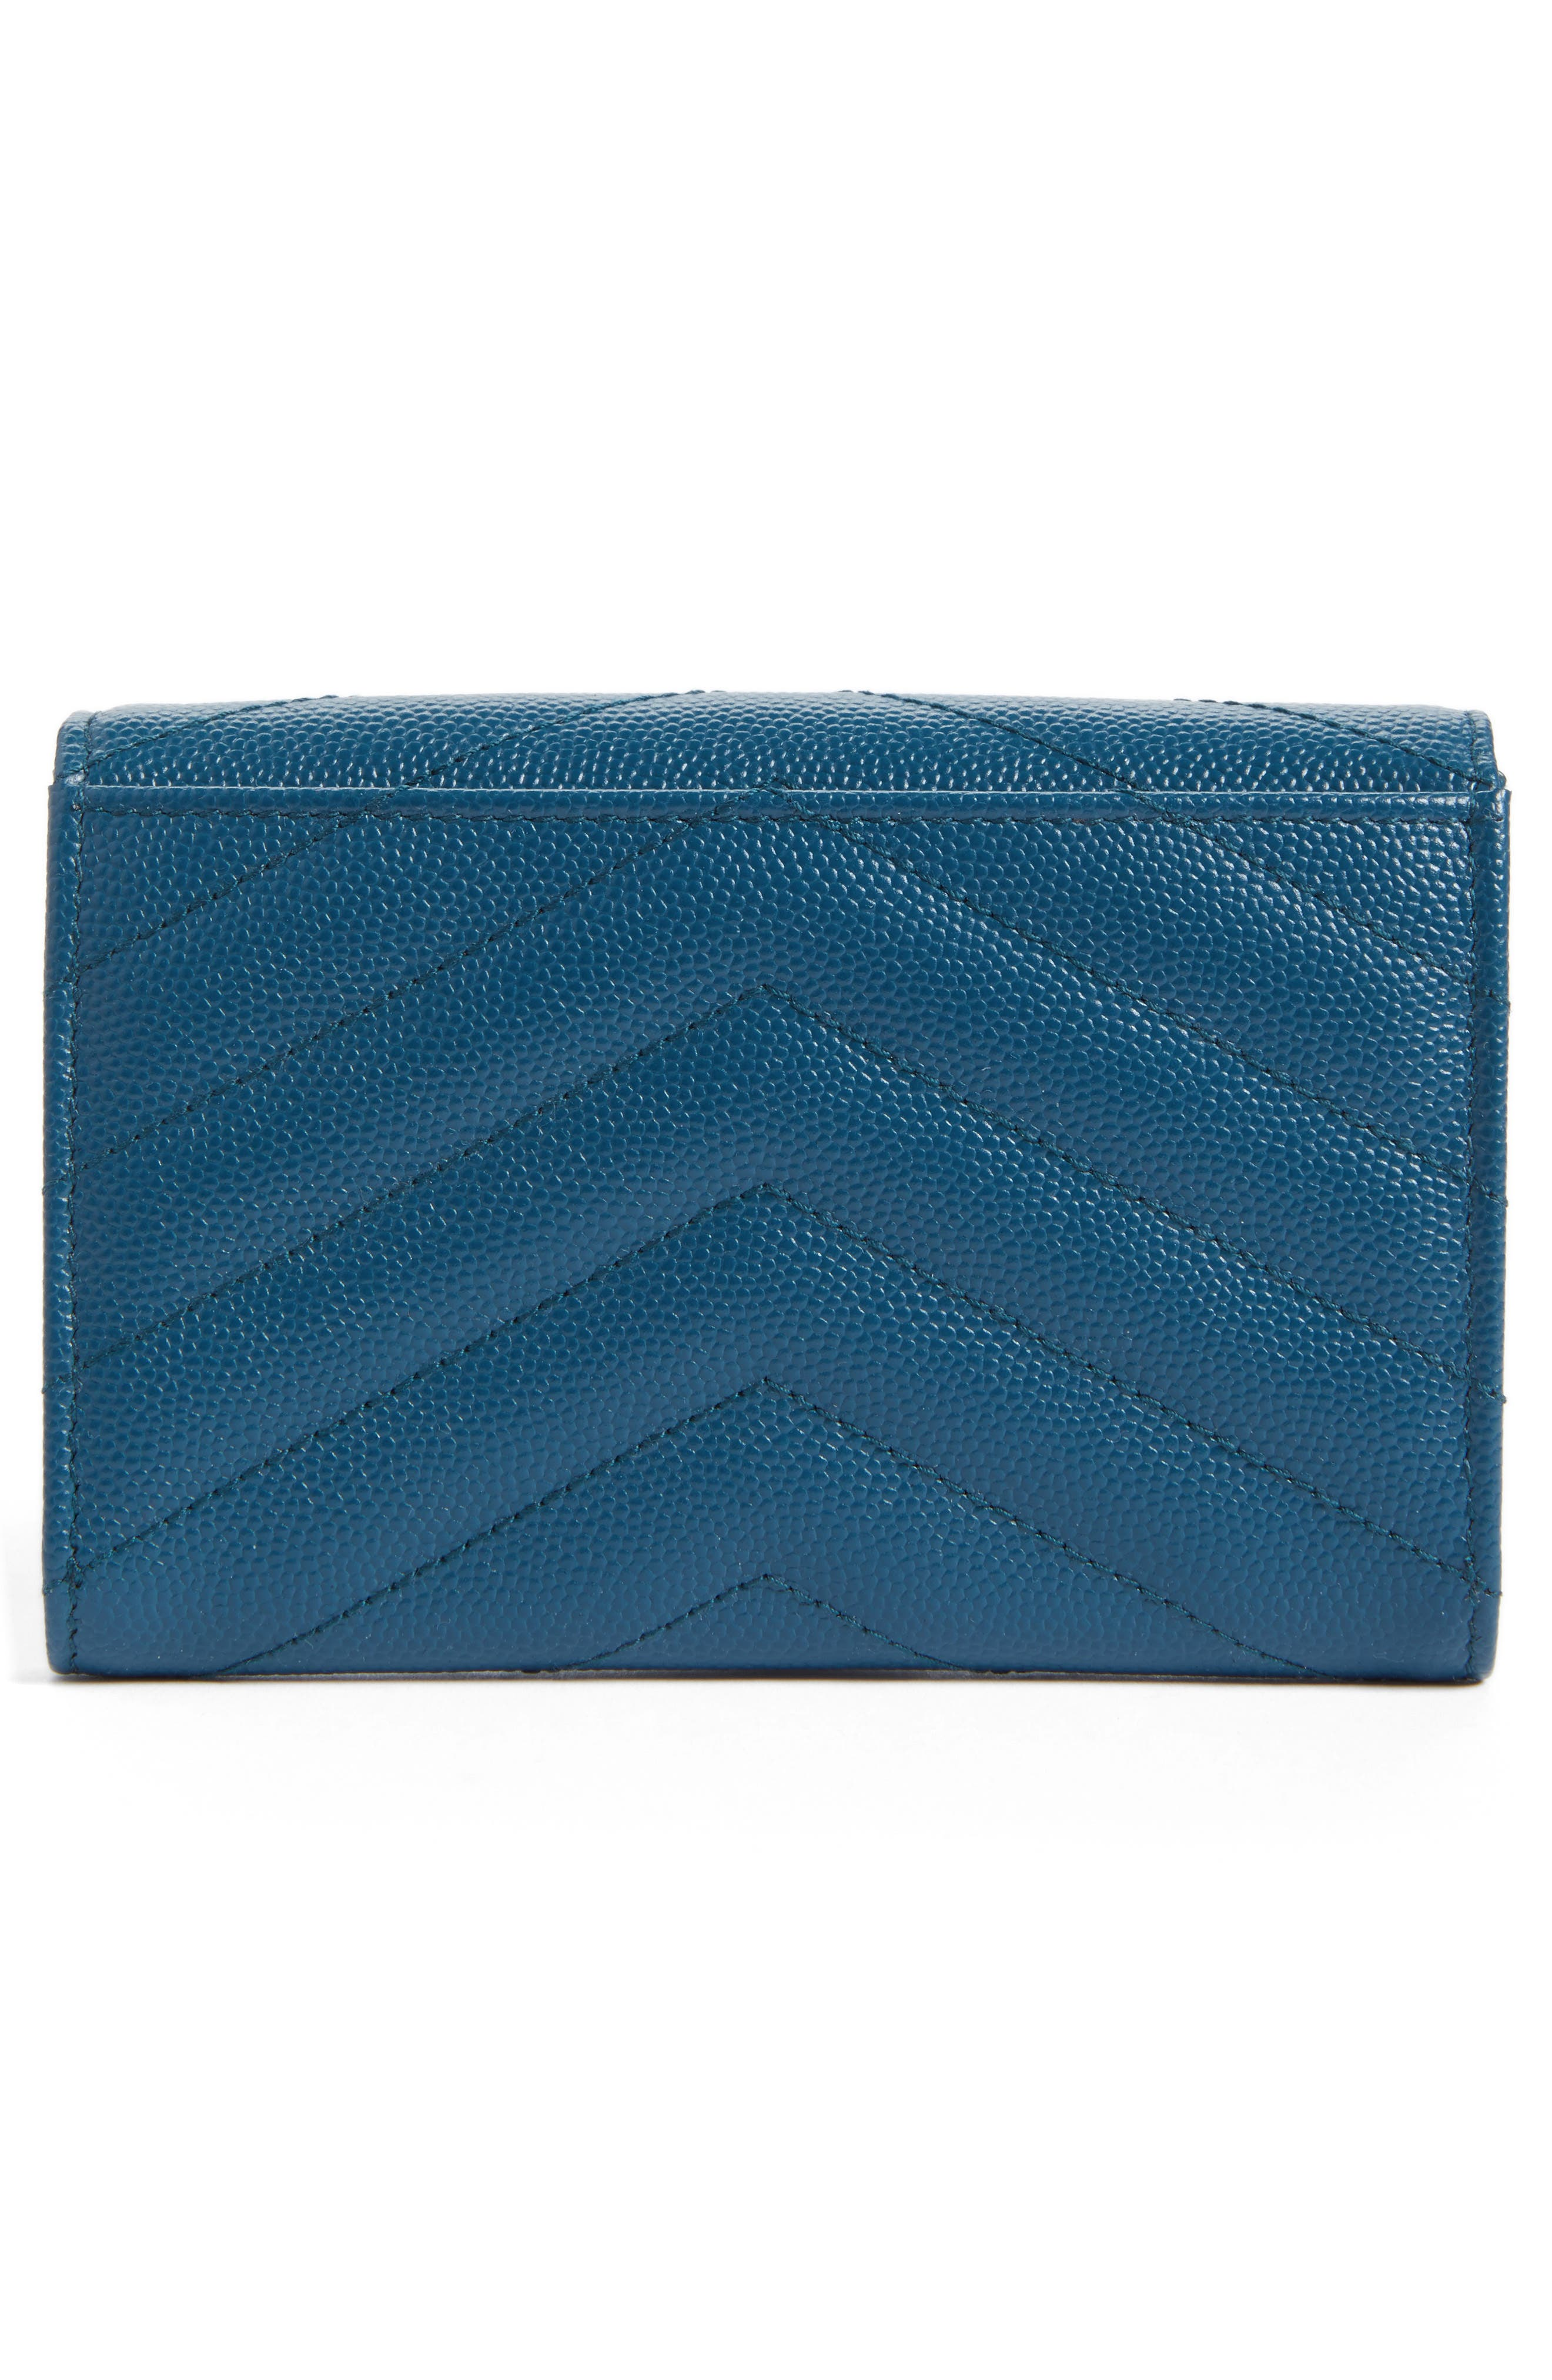 'Small Monogram' Leather French Wallet,                             Alternate thumbnail 29, color,